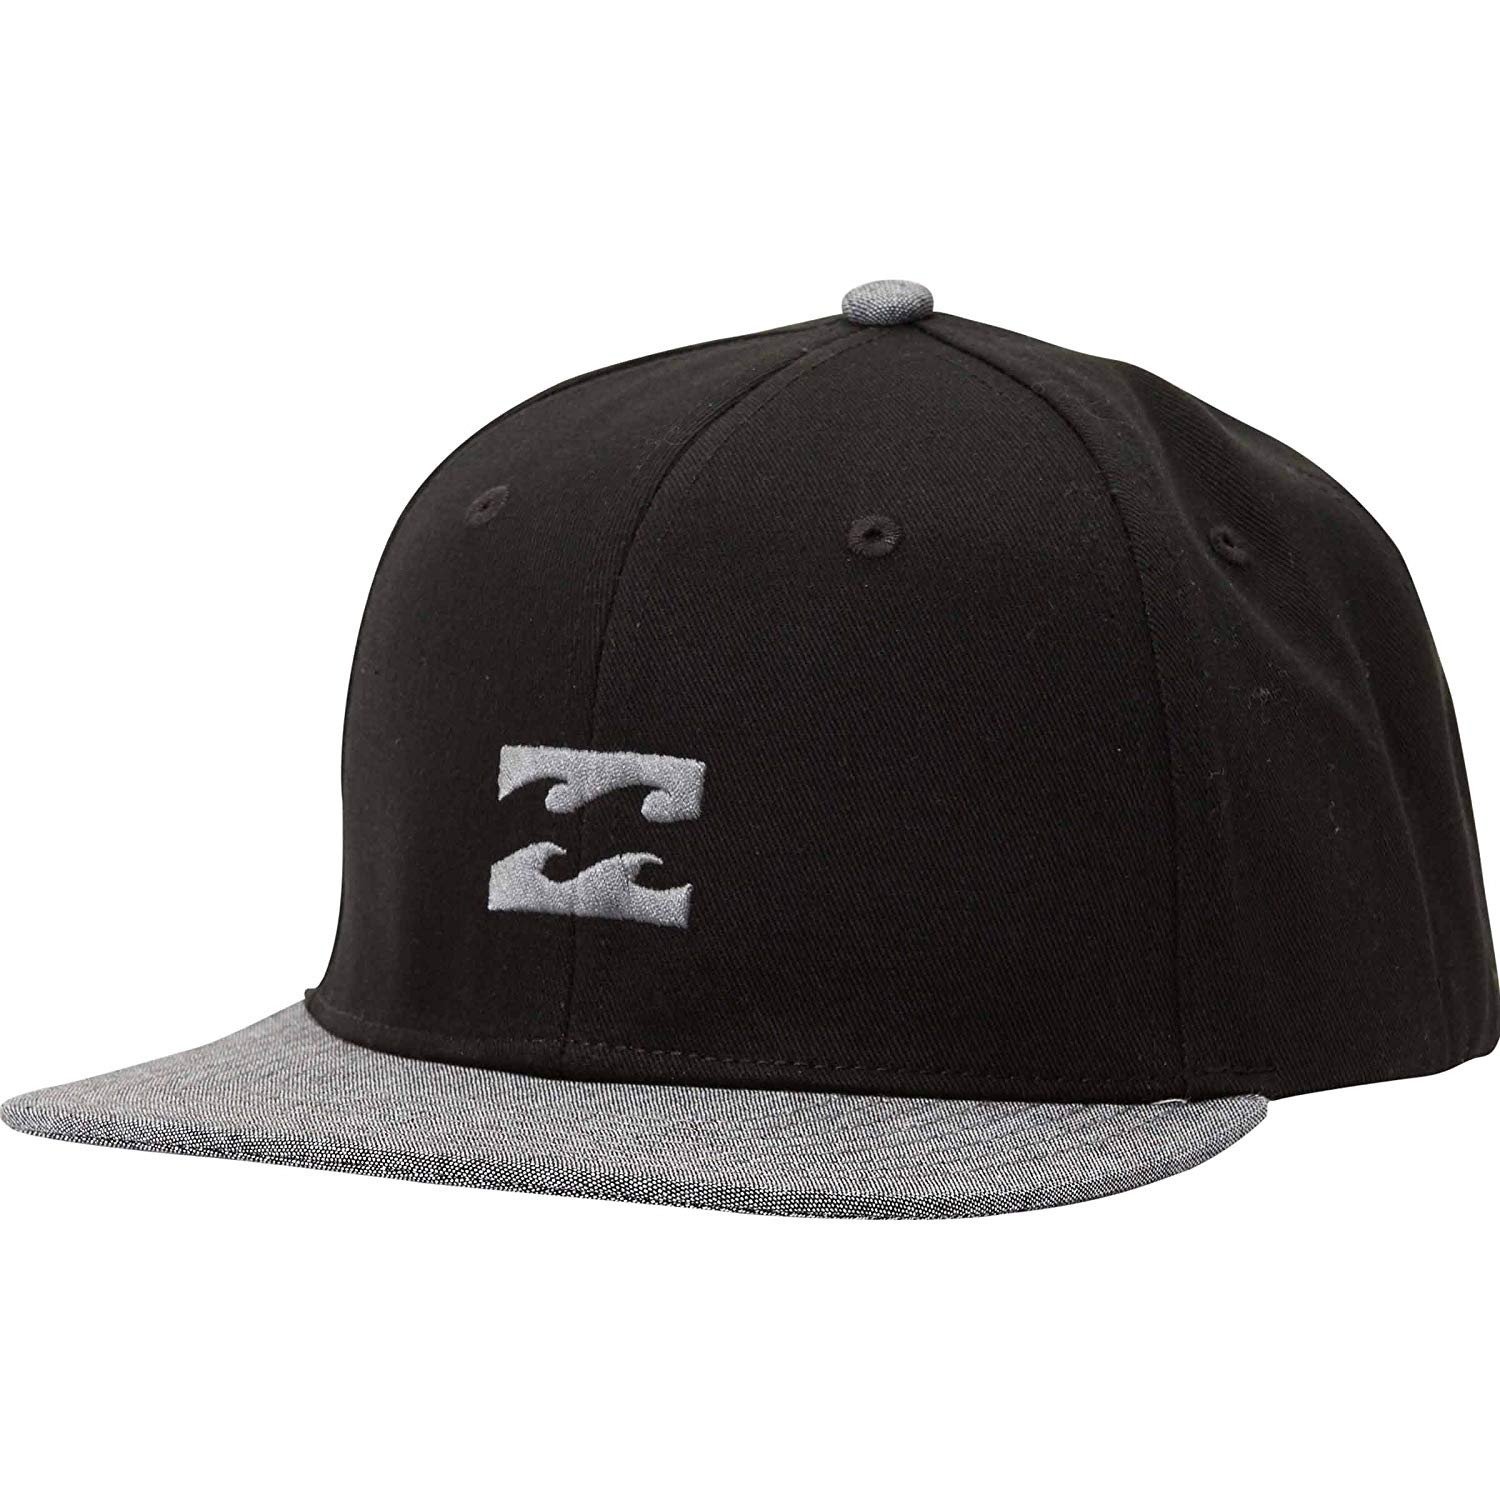 7bb9f0039c88e3 Get Quotations · Billabong Boys' All Day Snapback Hat Black/Grey One Size